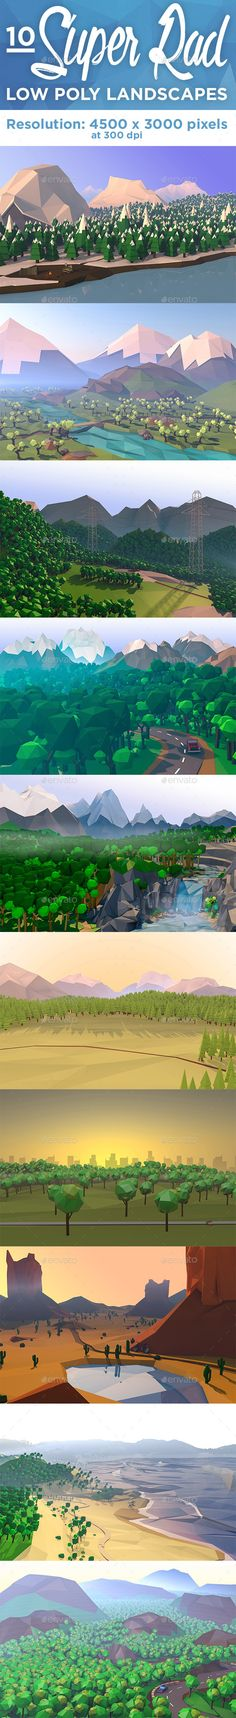 Low Poly - 10 Super Rad Landscapes by stylecss 10 Super Rad Low Poly Landcapes were all created in Cinema 4D and tweaked in Adobe Photoshop